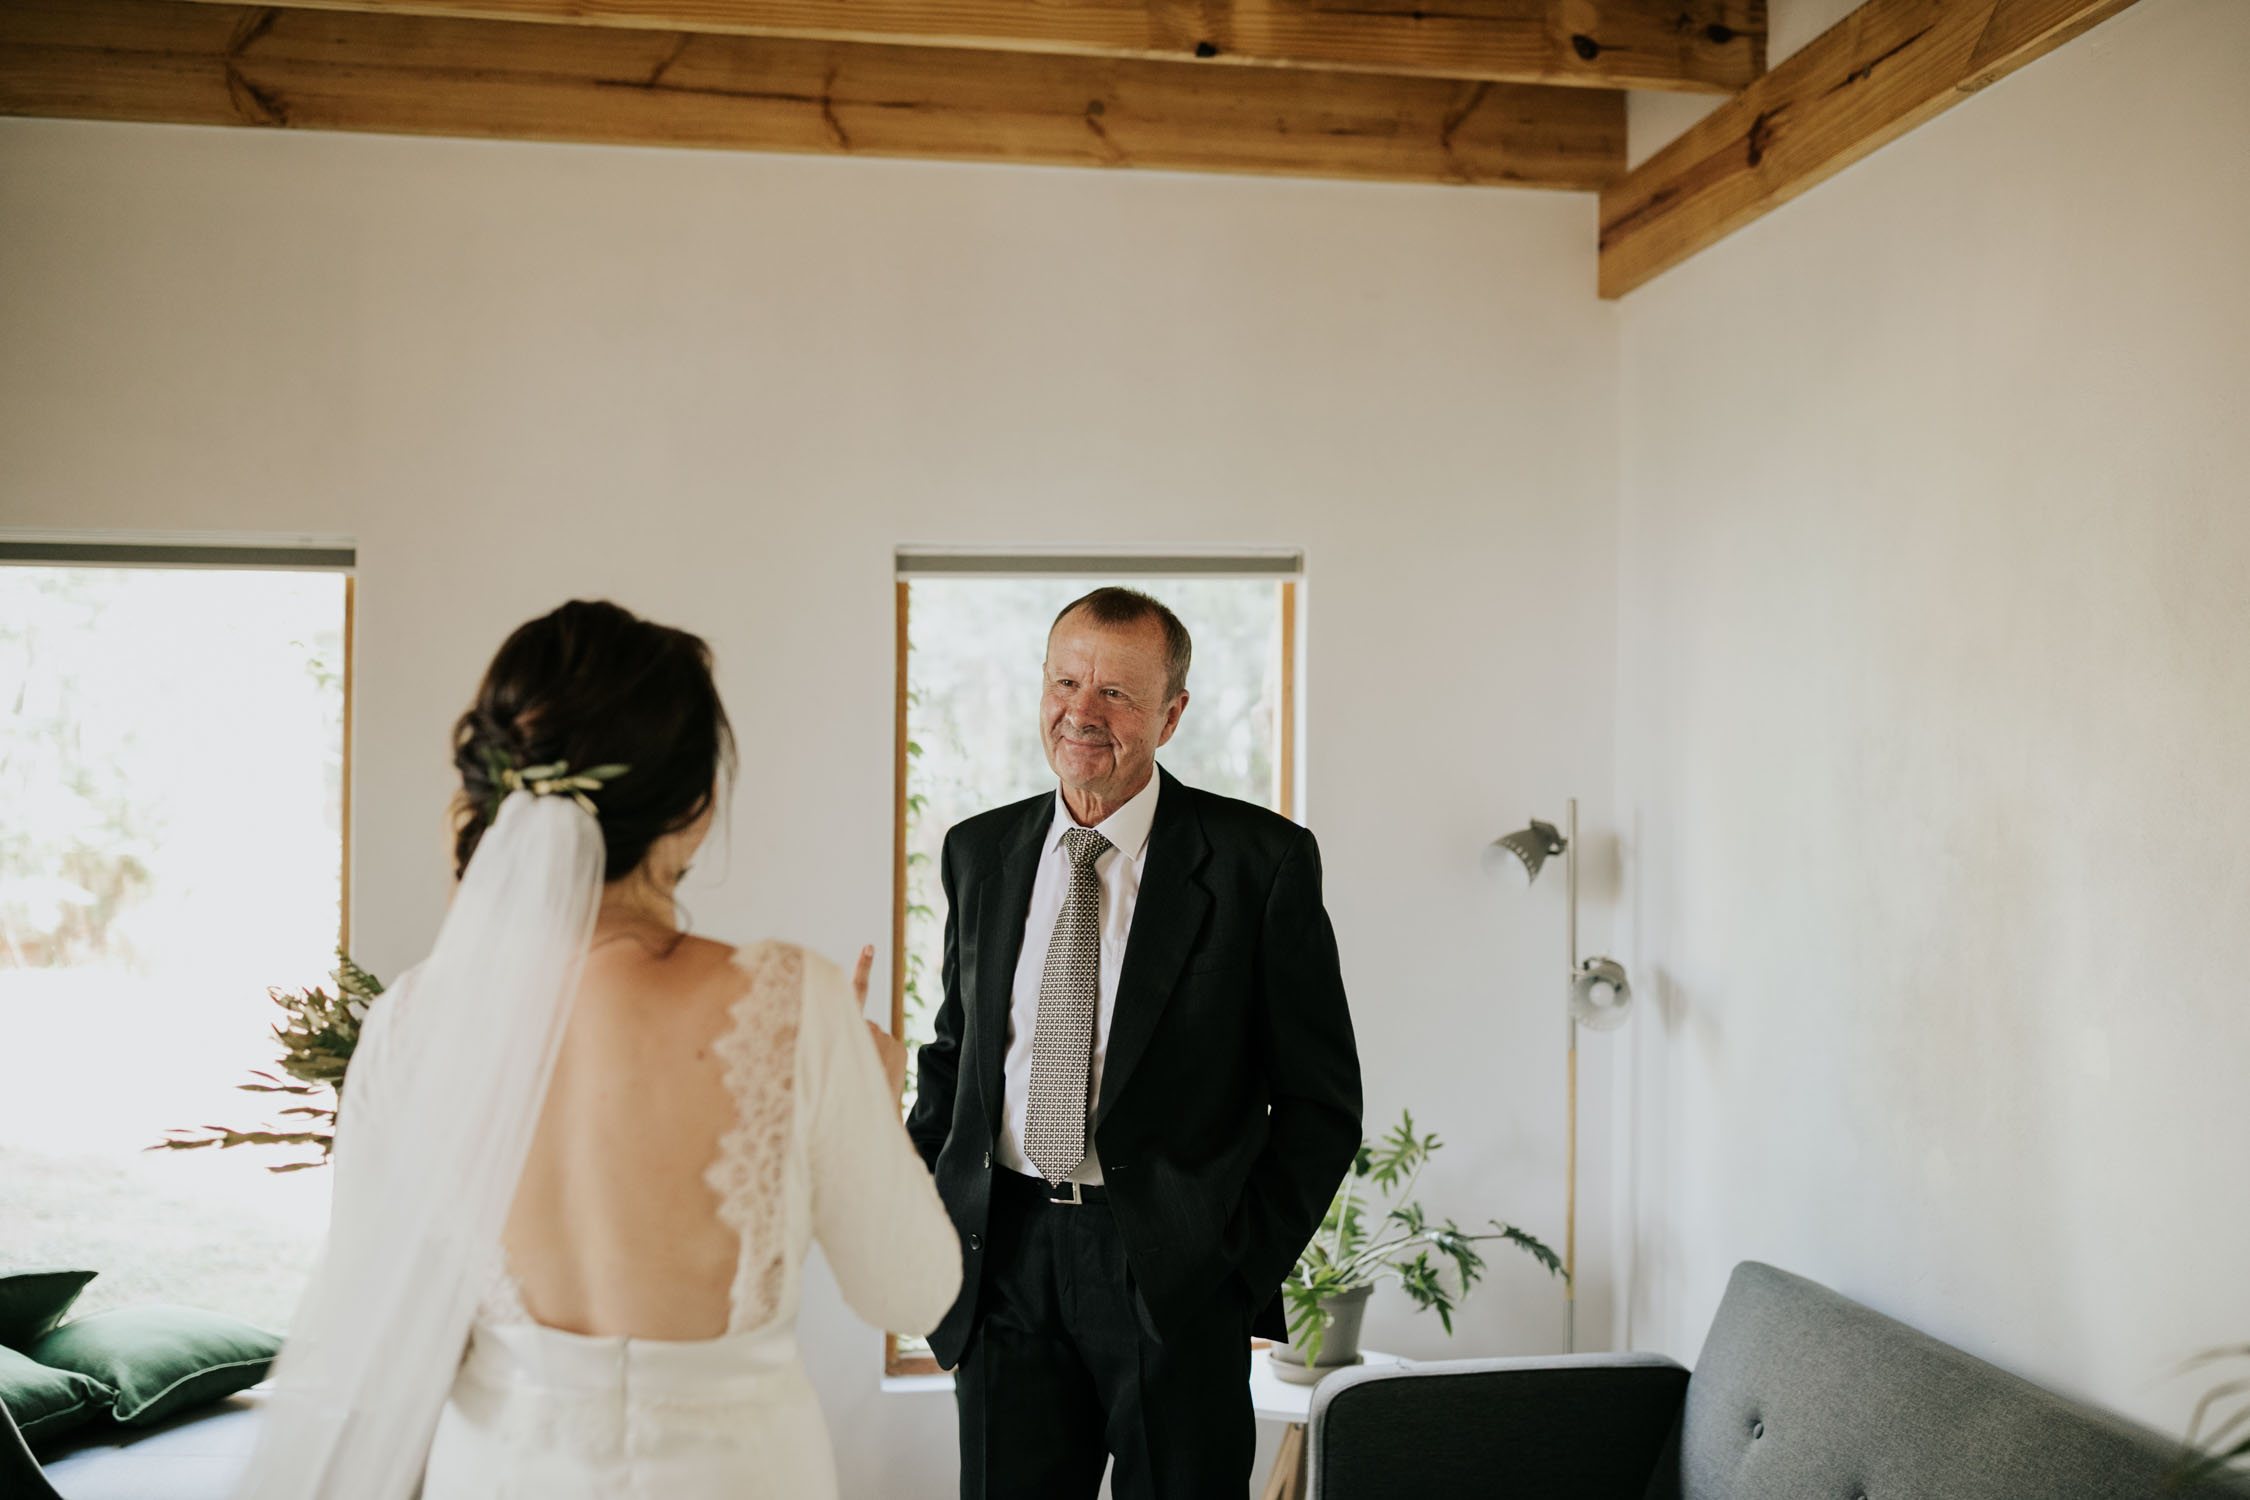 Father of the bride's emotional reaction when he sees his daughter in her wedding dress